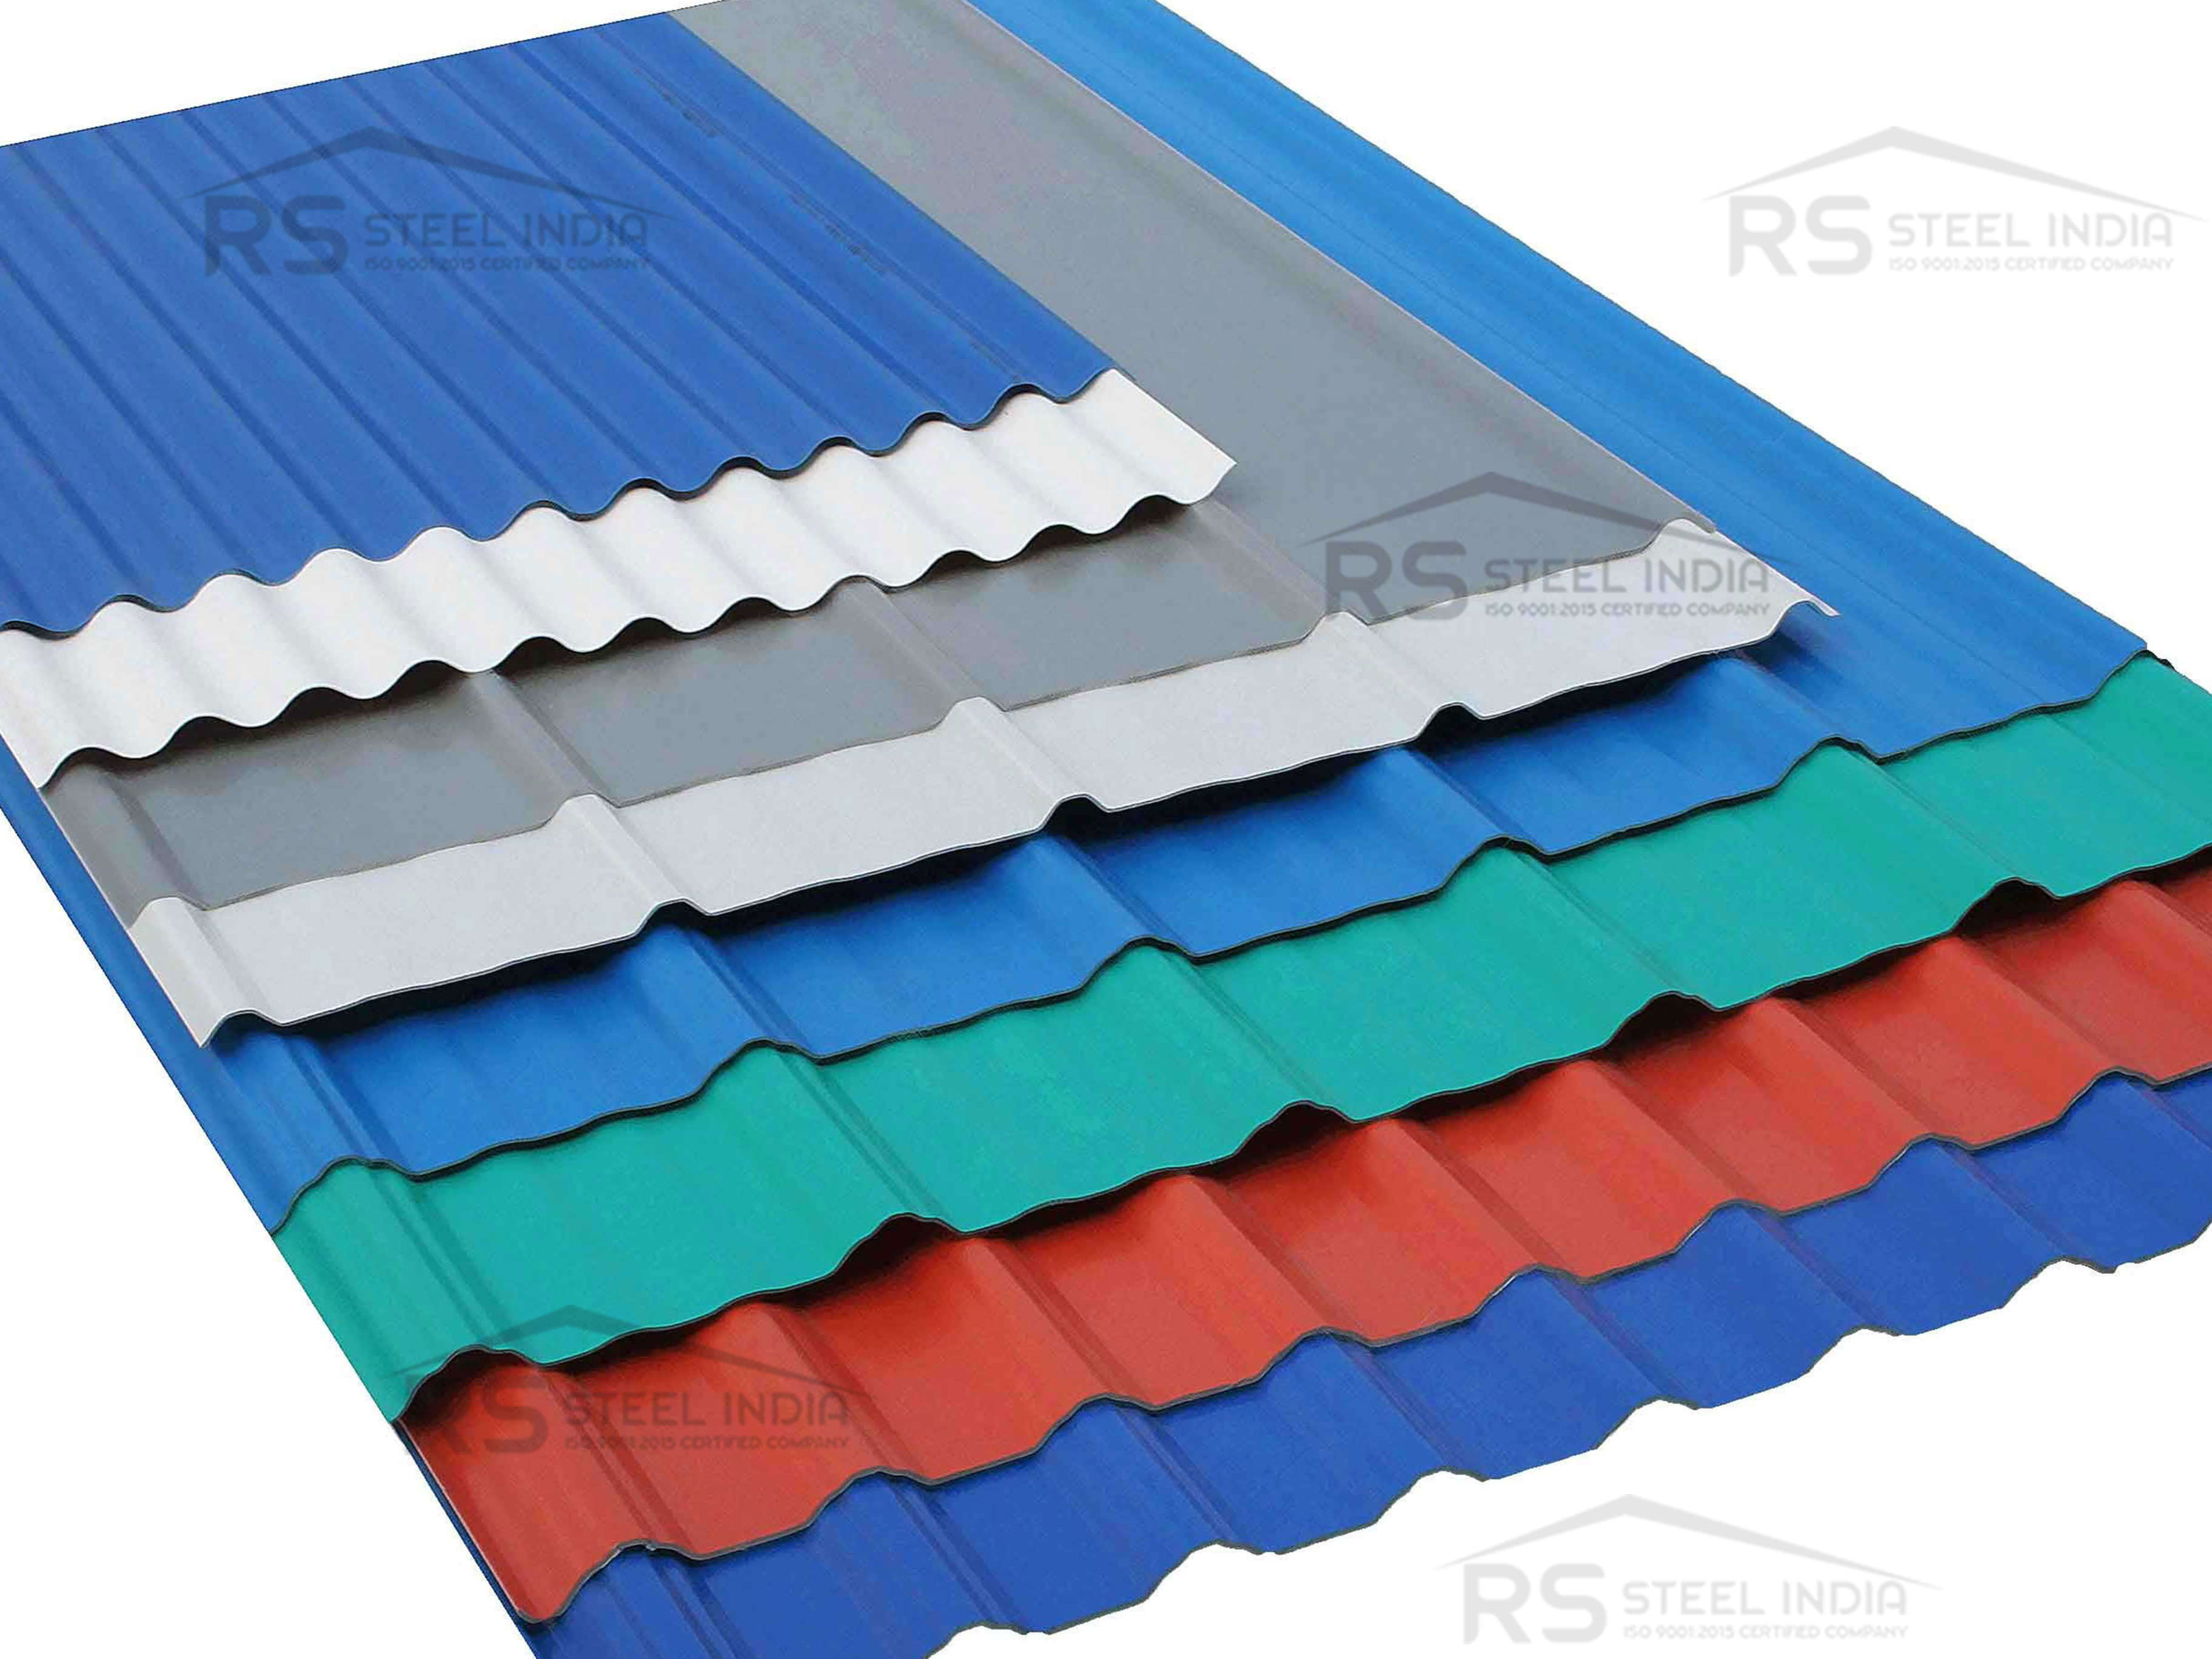 Roofing 7 cladding sheet